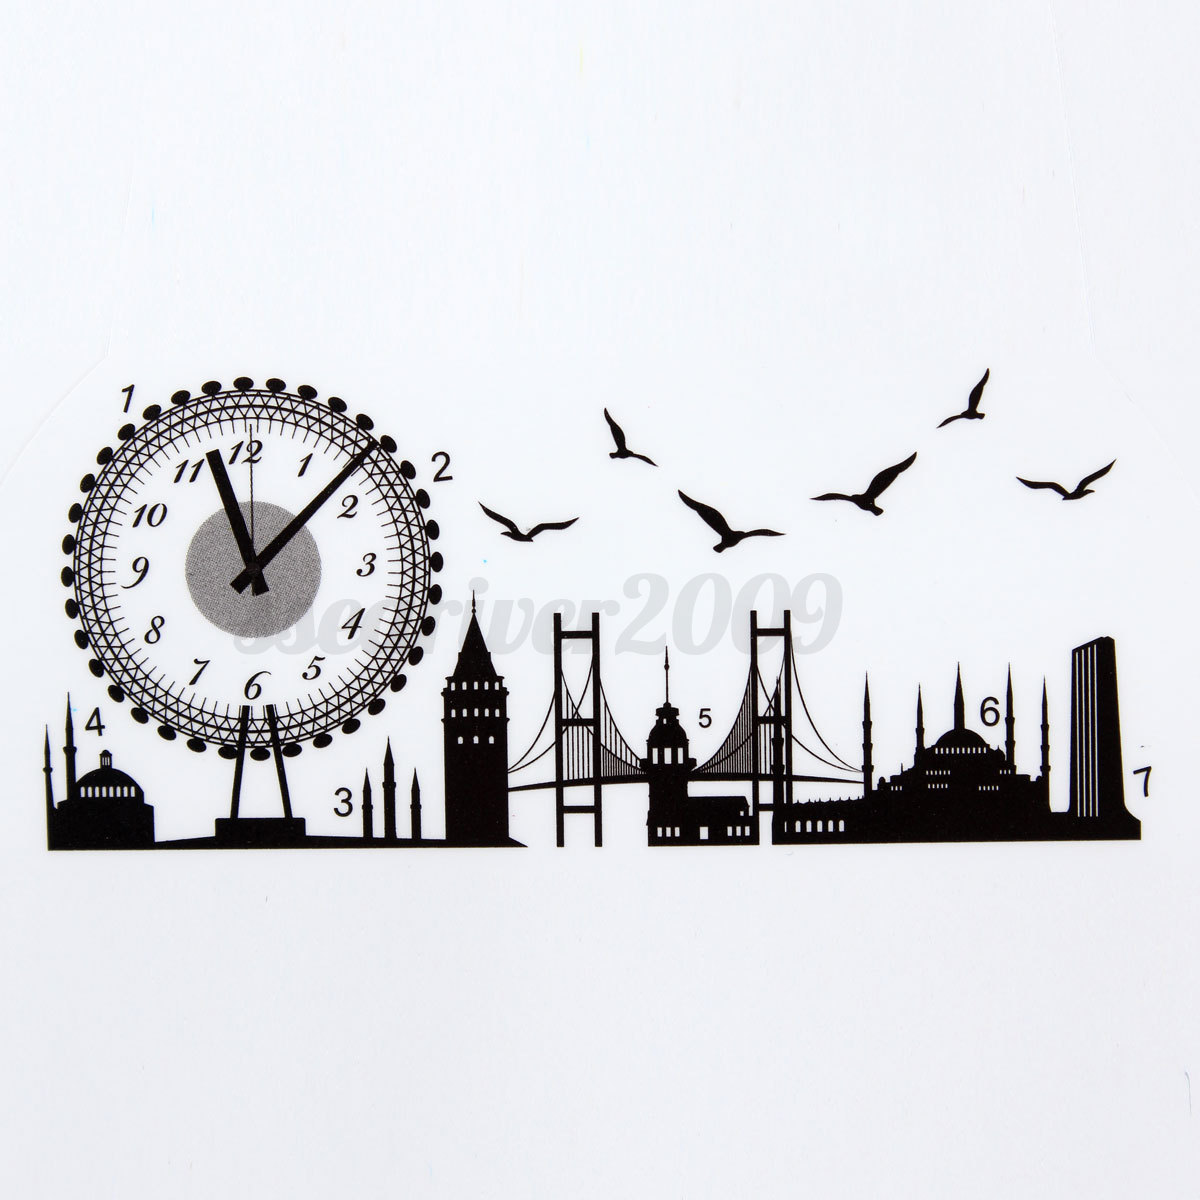 Modern Art Decor Wall Clock Sticker : Modern style diy clock wall sticker decal art